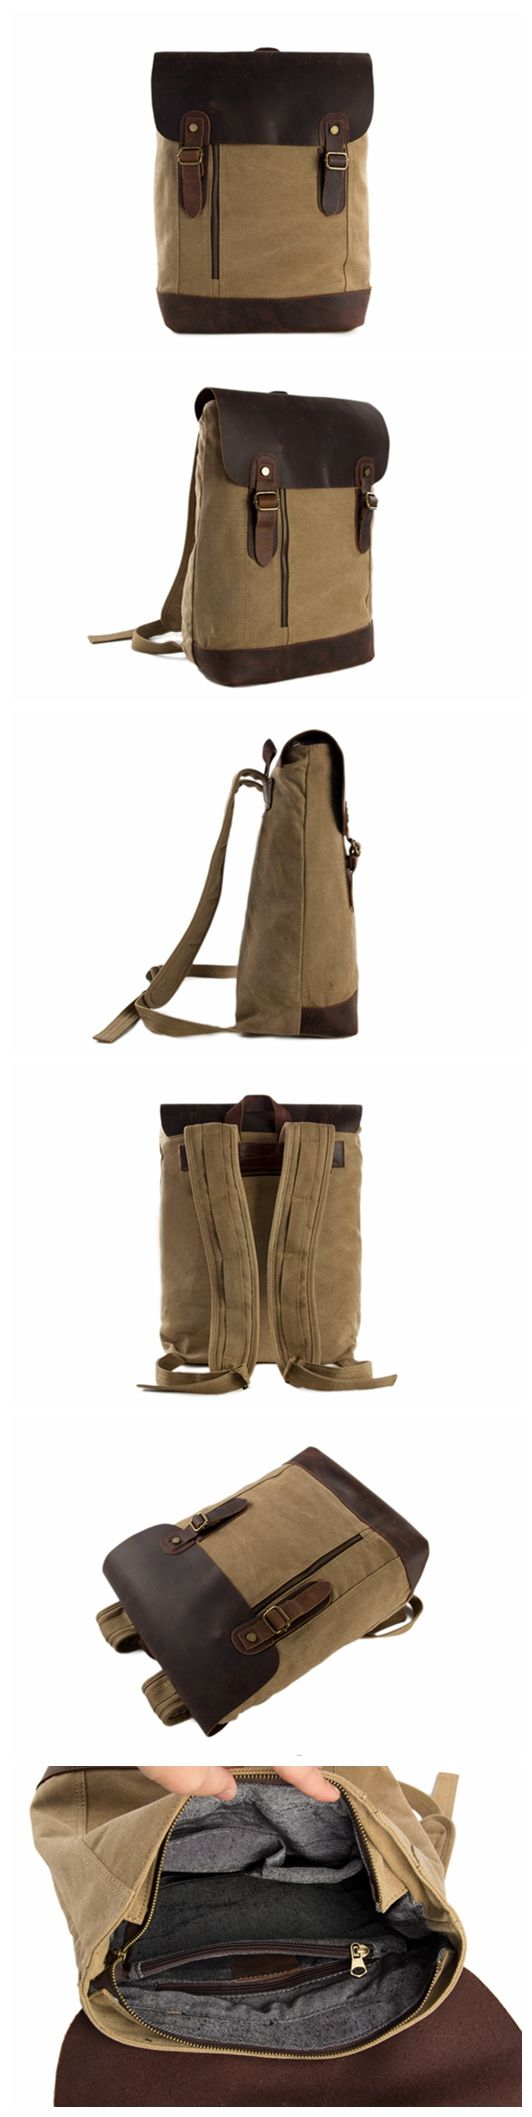 HANDMADE CANVAS LEATHER BACKPACK WAXED CANVAS CASUAL BACKPACK SCHOOL BACKPACK